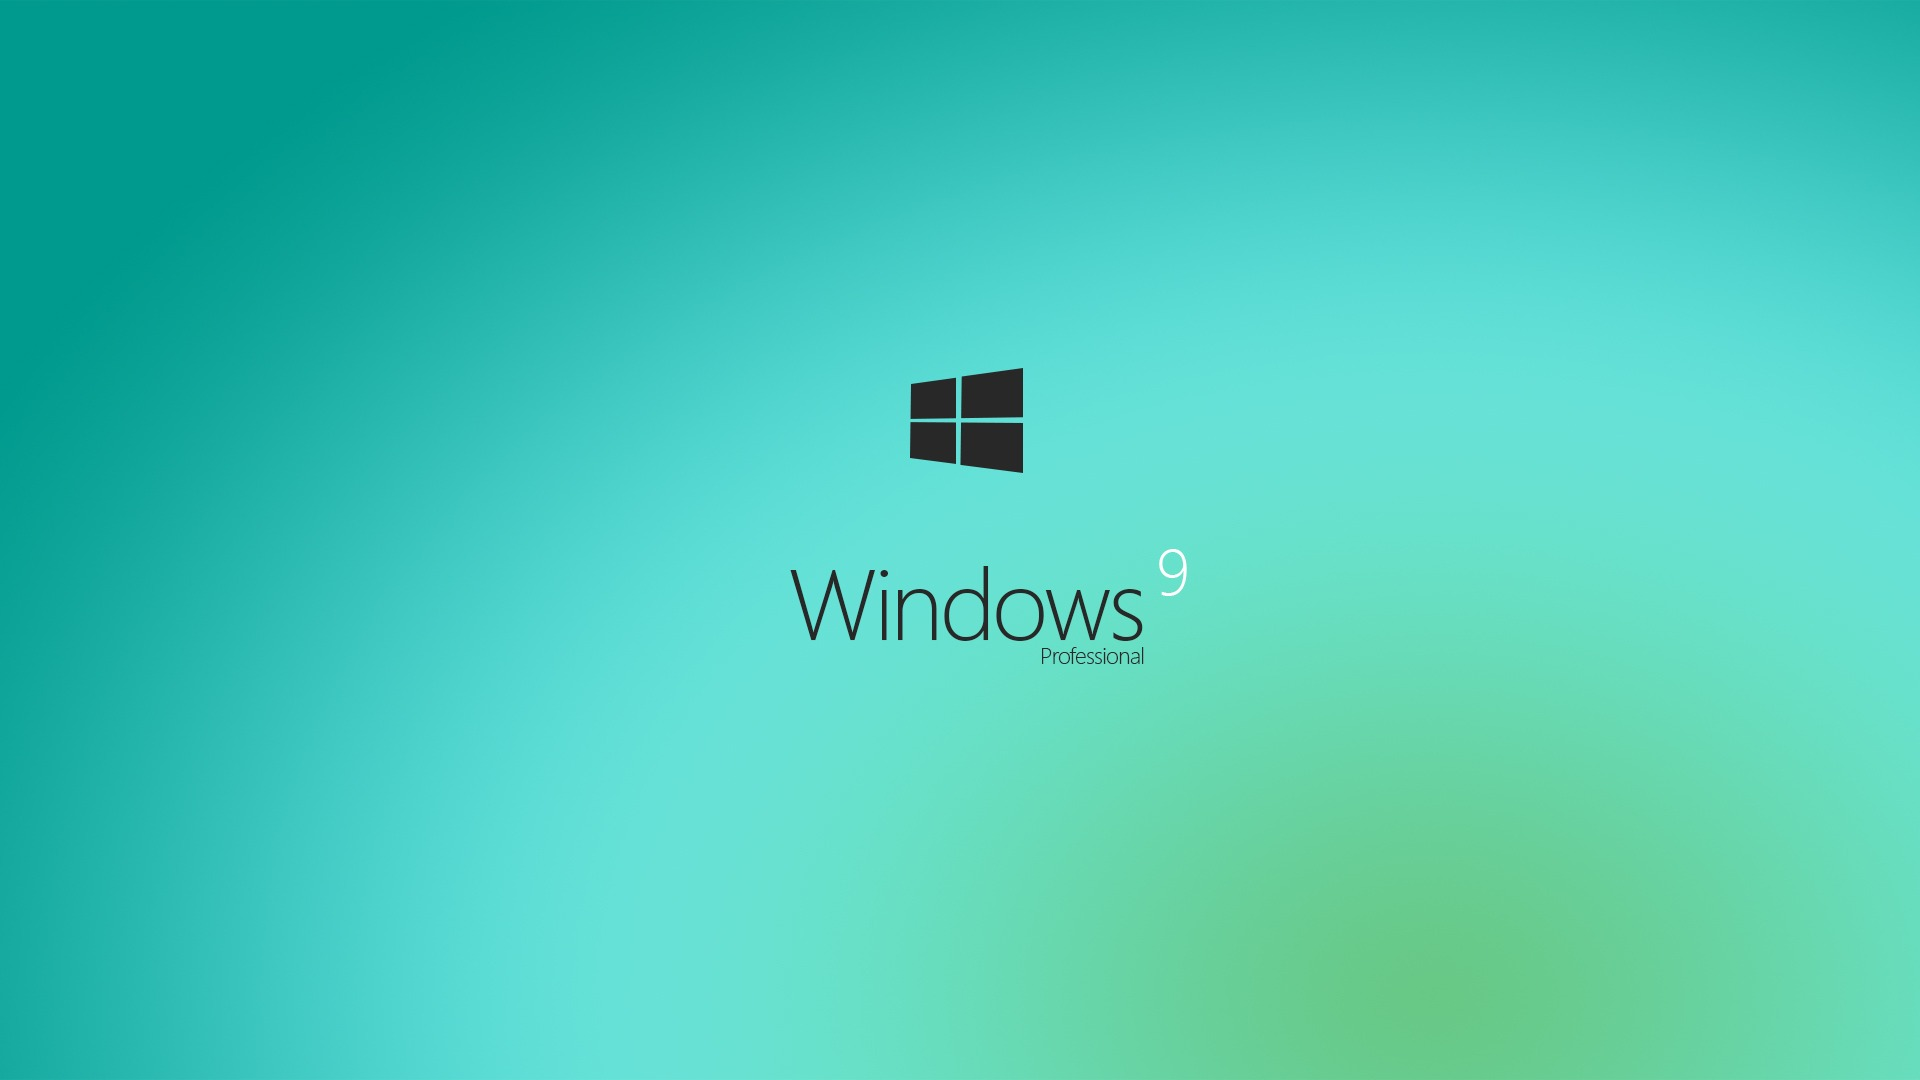 Windows 9 Wallpaper HD